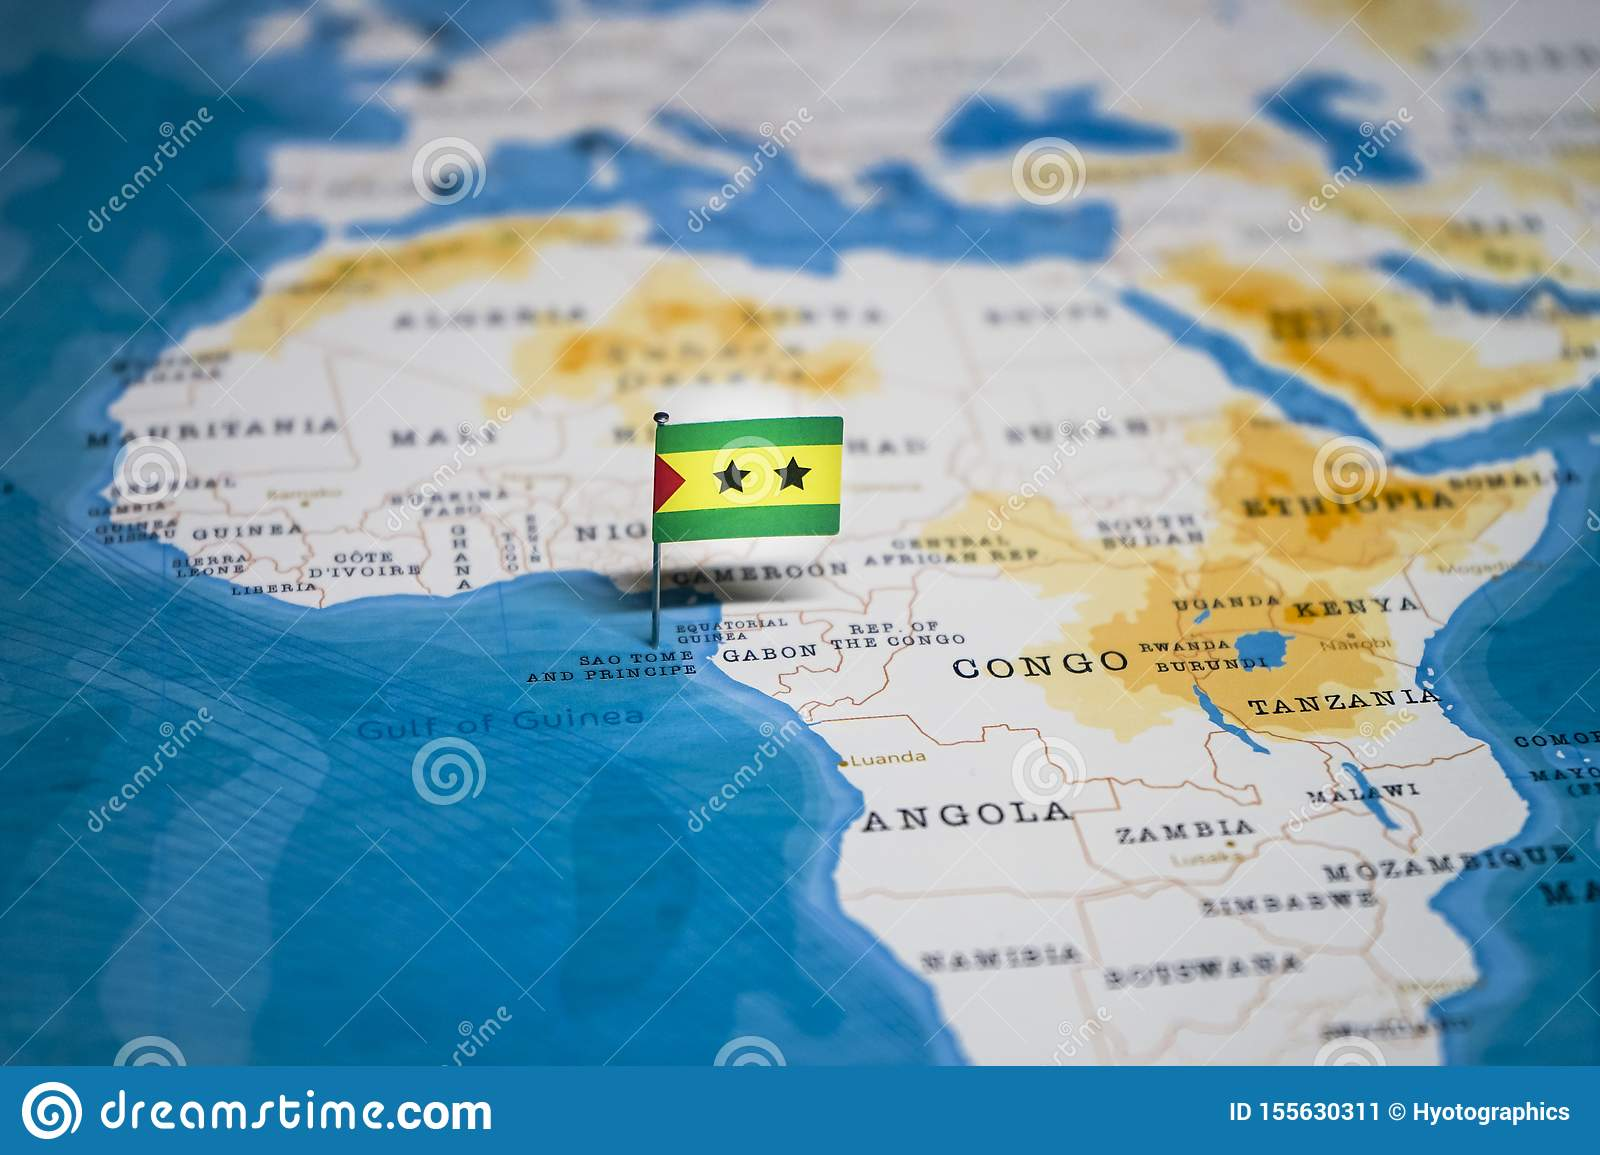 The Flag Of Sao Tome And Principe In The World Map Stock ... Sao Tome And Principe On World Map on bahia on world map, united republic of tanzania on world map, isle of man on world map, turks and caicos islands on world map, northern mariana islands on world map, british virgin islands on world map, antigua and barbuda on world map, manama on world map, freetown on world map, cocos islands on world map, reunion on world map, sao tome e principe flag, british guiana on world map, democratic republic of the congo on world map, saint kitts and nevis on world map, mayotte on world map, holy see on world map, republic of korea on world map, principe island map, northern ireland on world map,